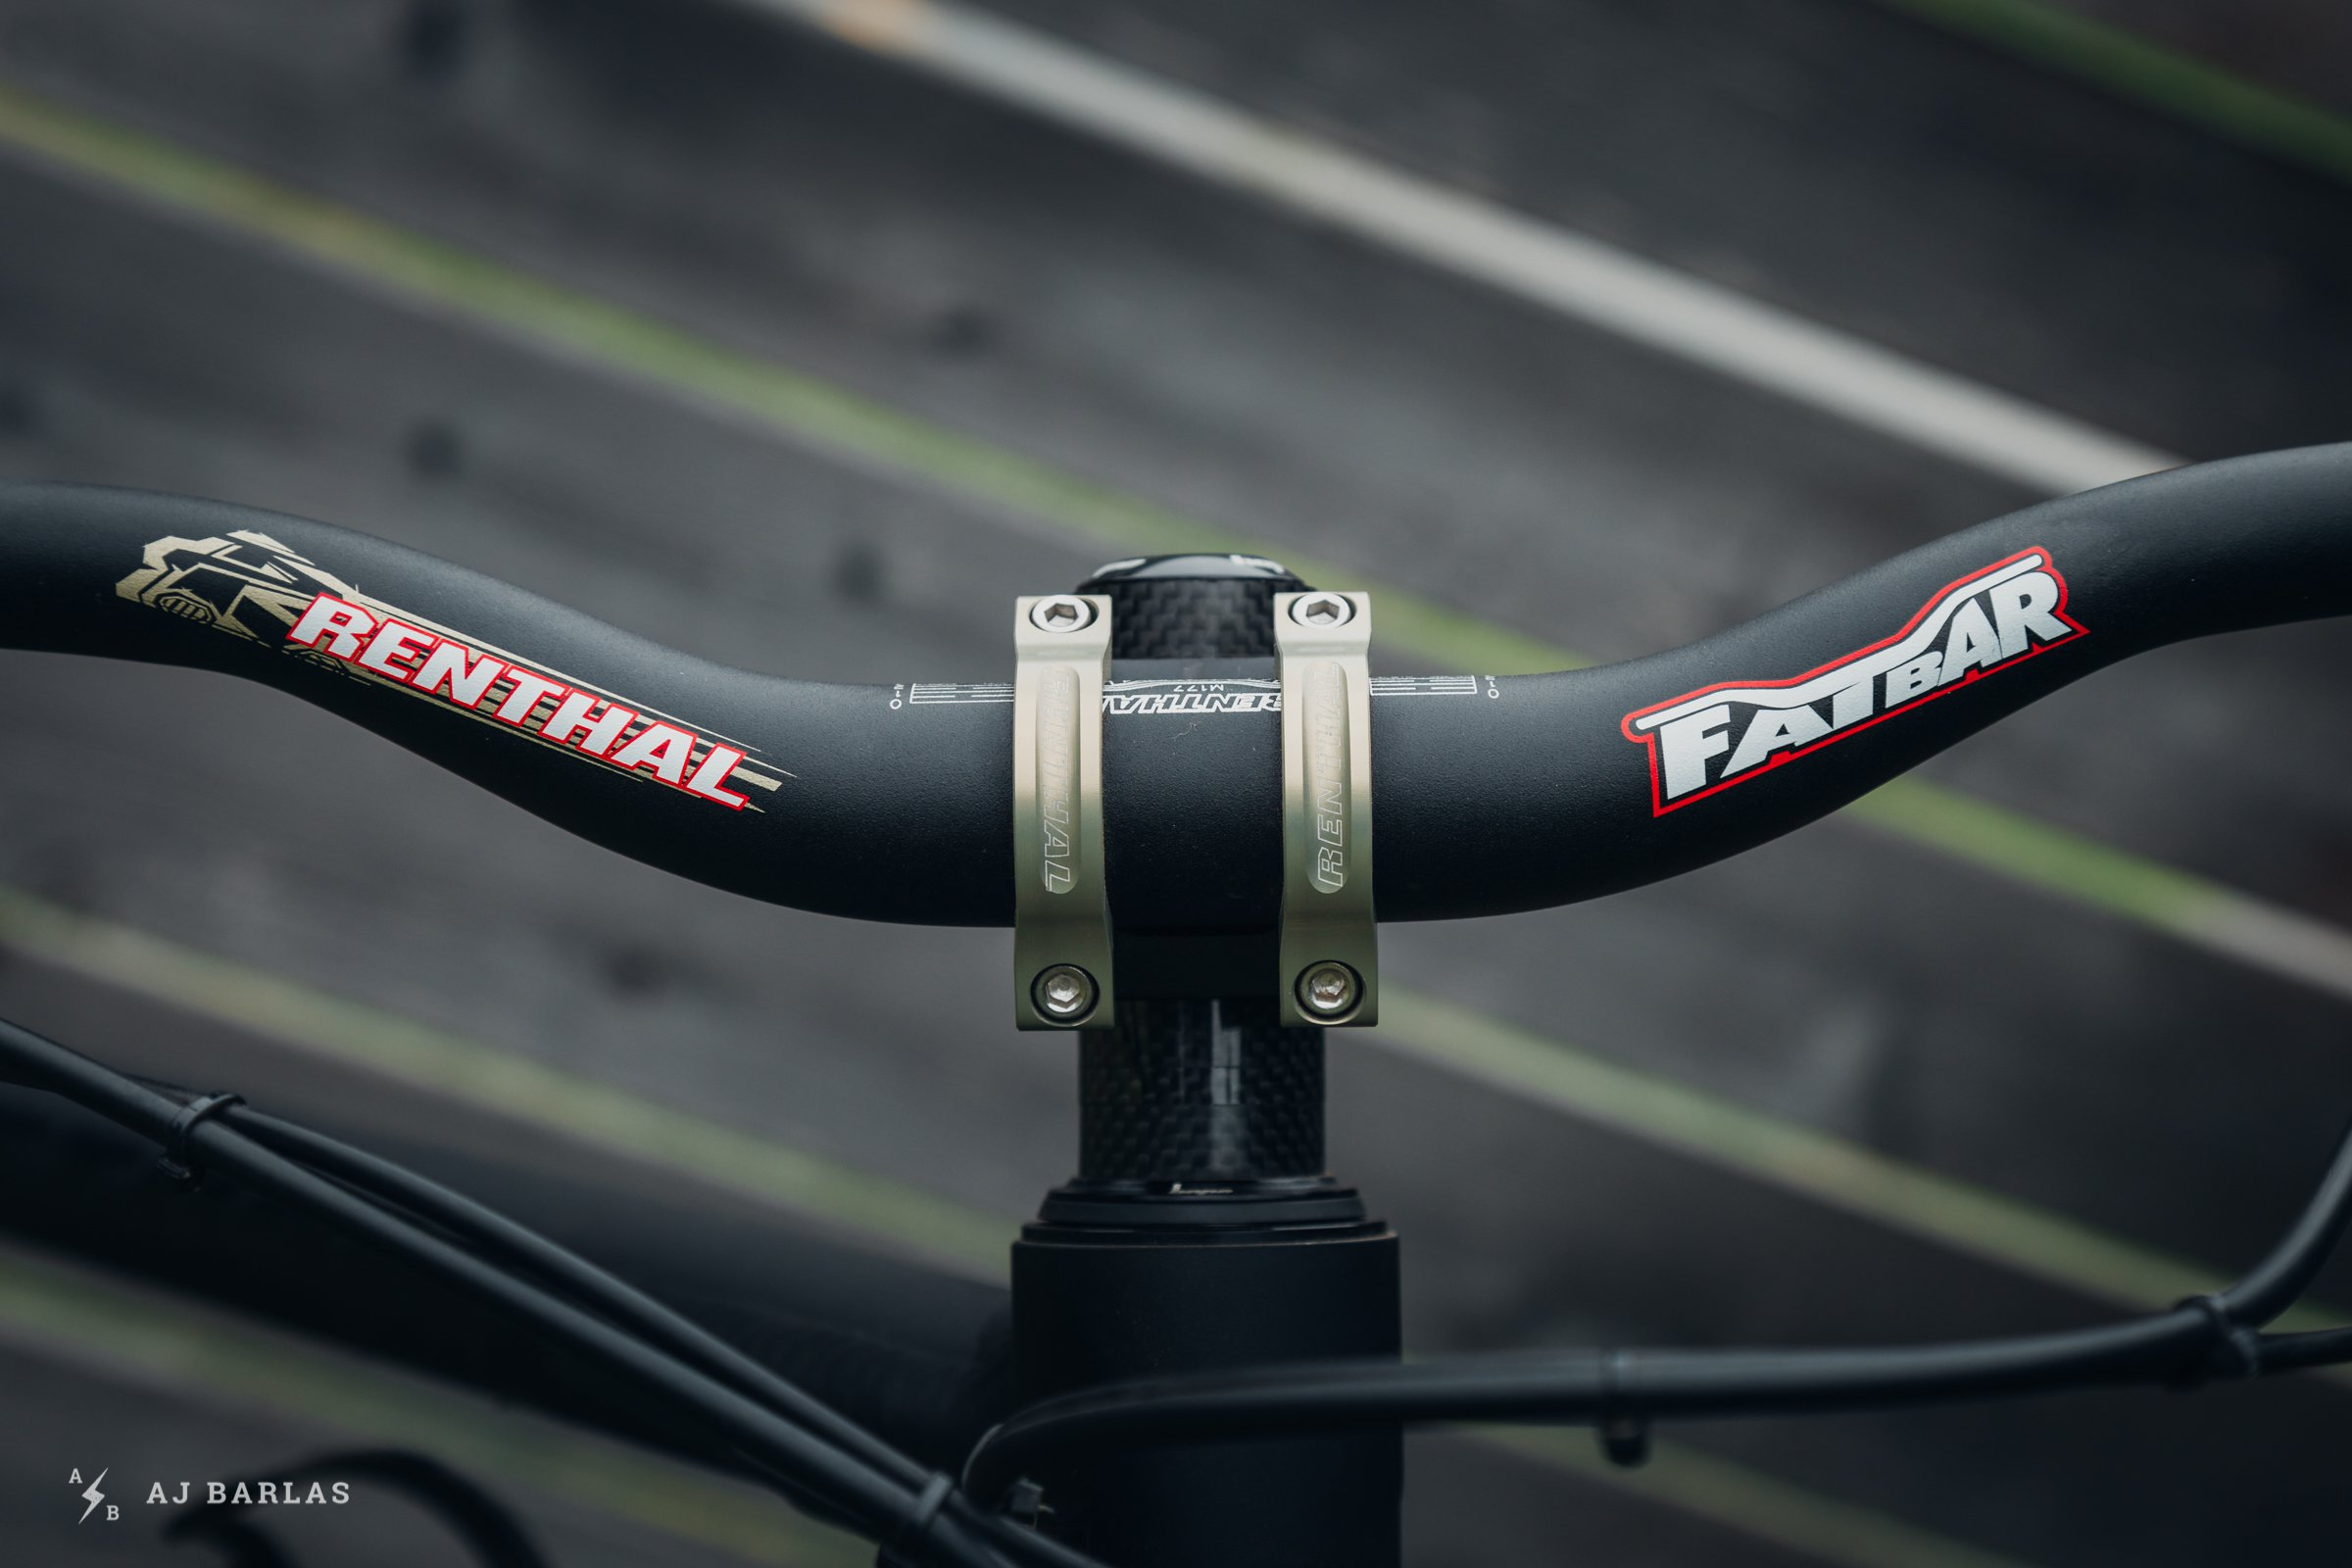 33c23a83376 Renthal Fatbar 800 & 40mm Apex Stem